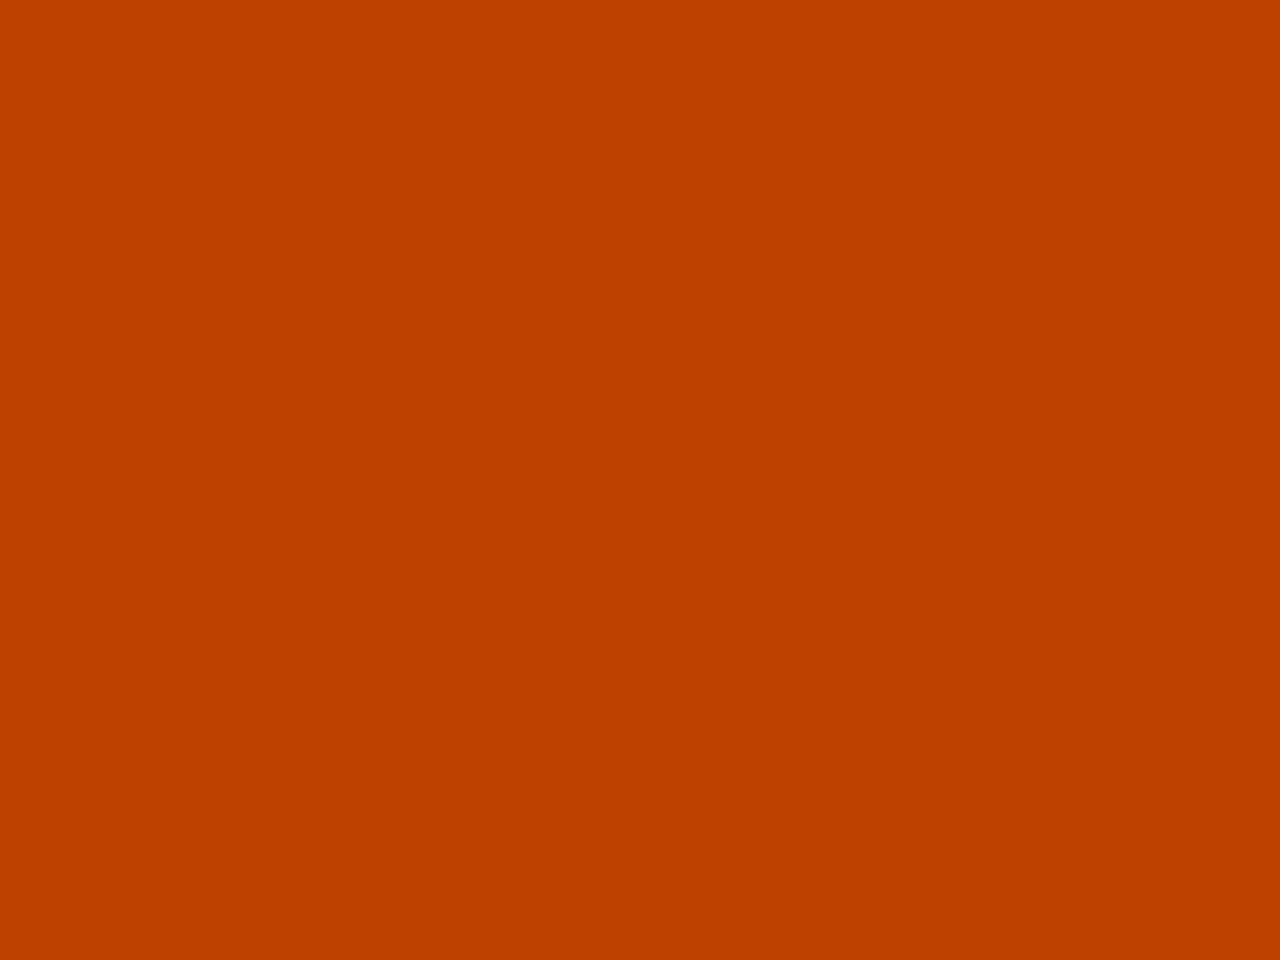 1280x960 Mahogany Solid Color Background